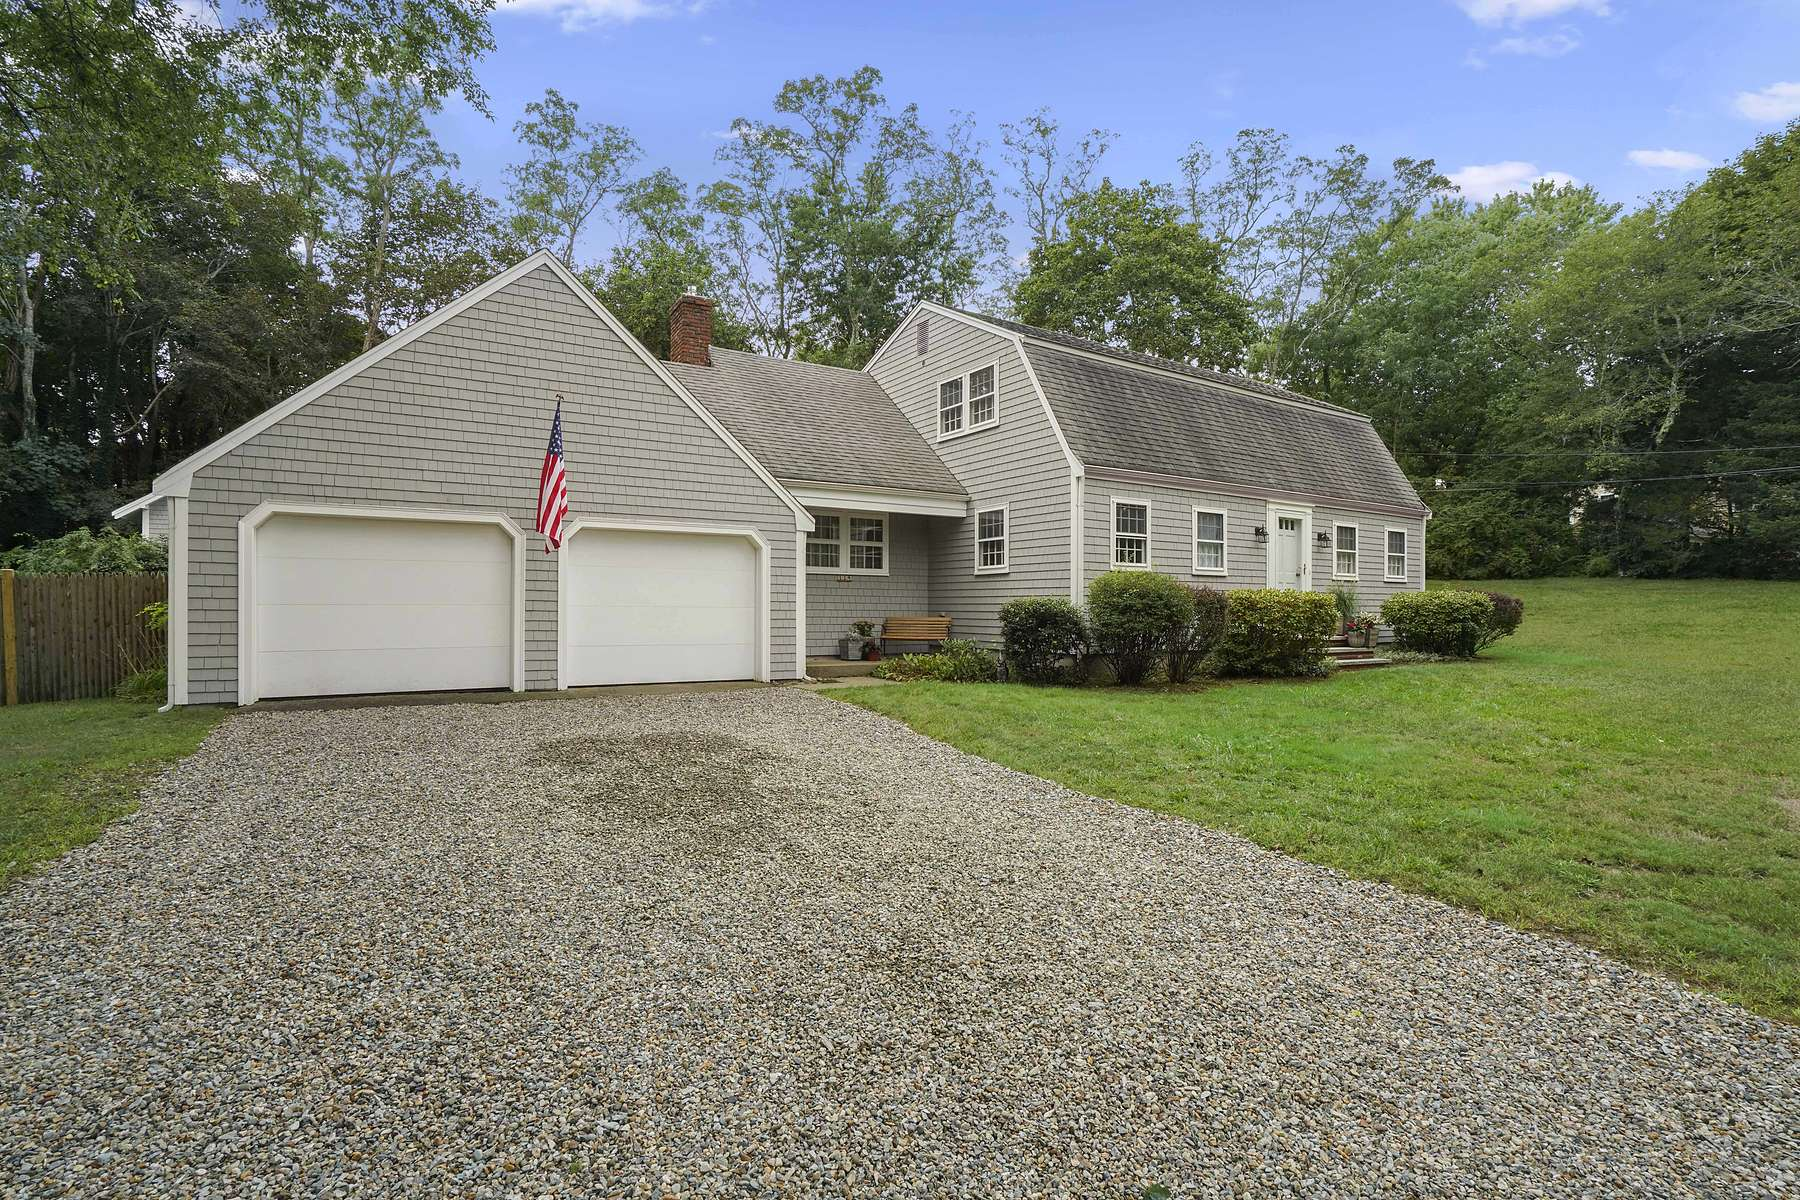 Single Family Home for Active at 114 Onion Hill Road Duxbury, Massachusetts 02332 United States